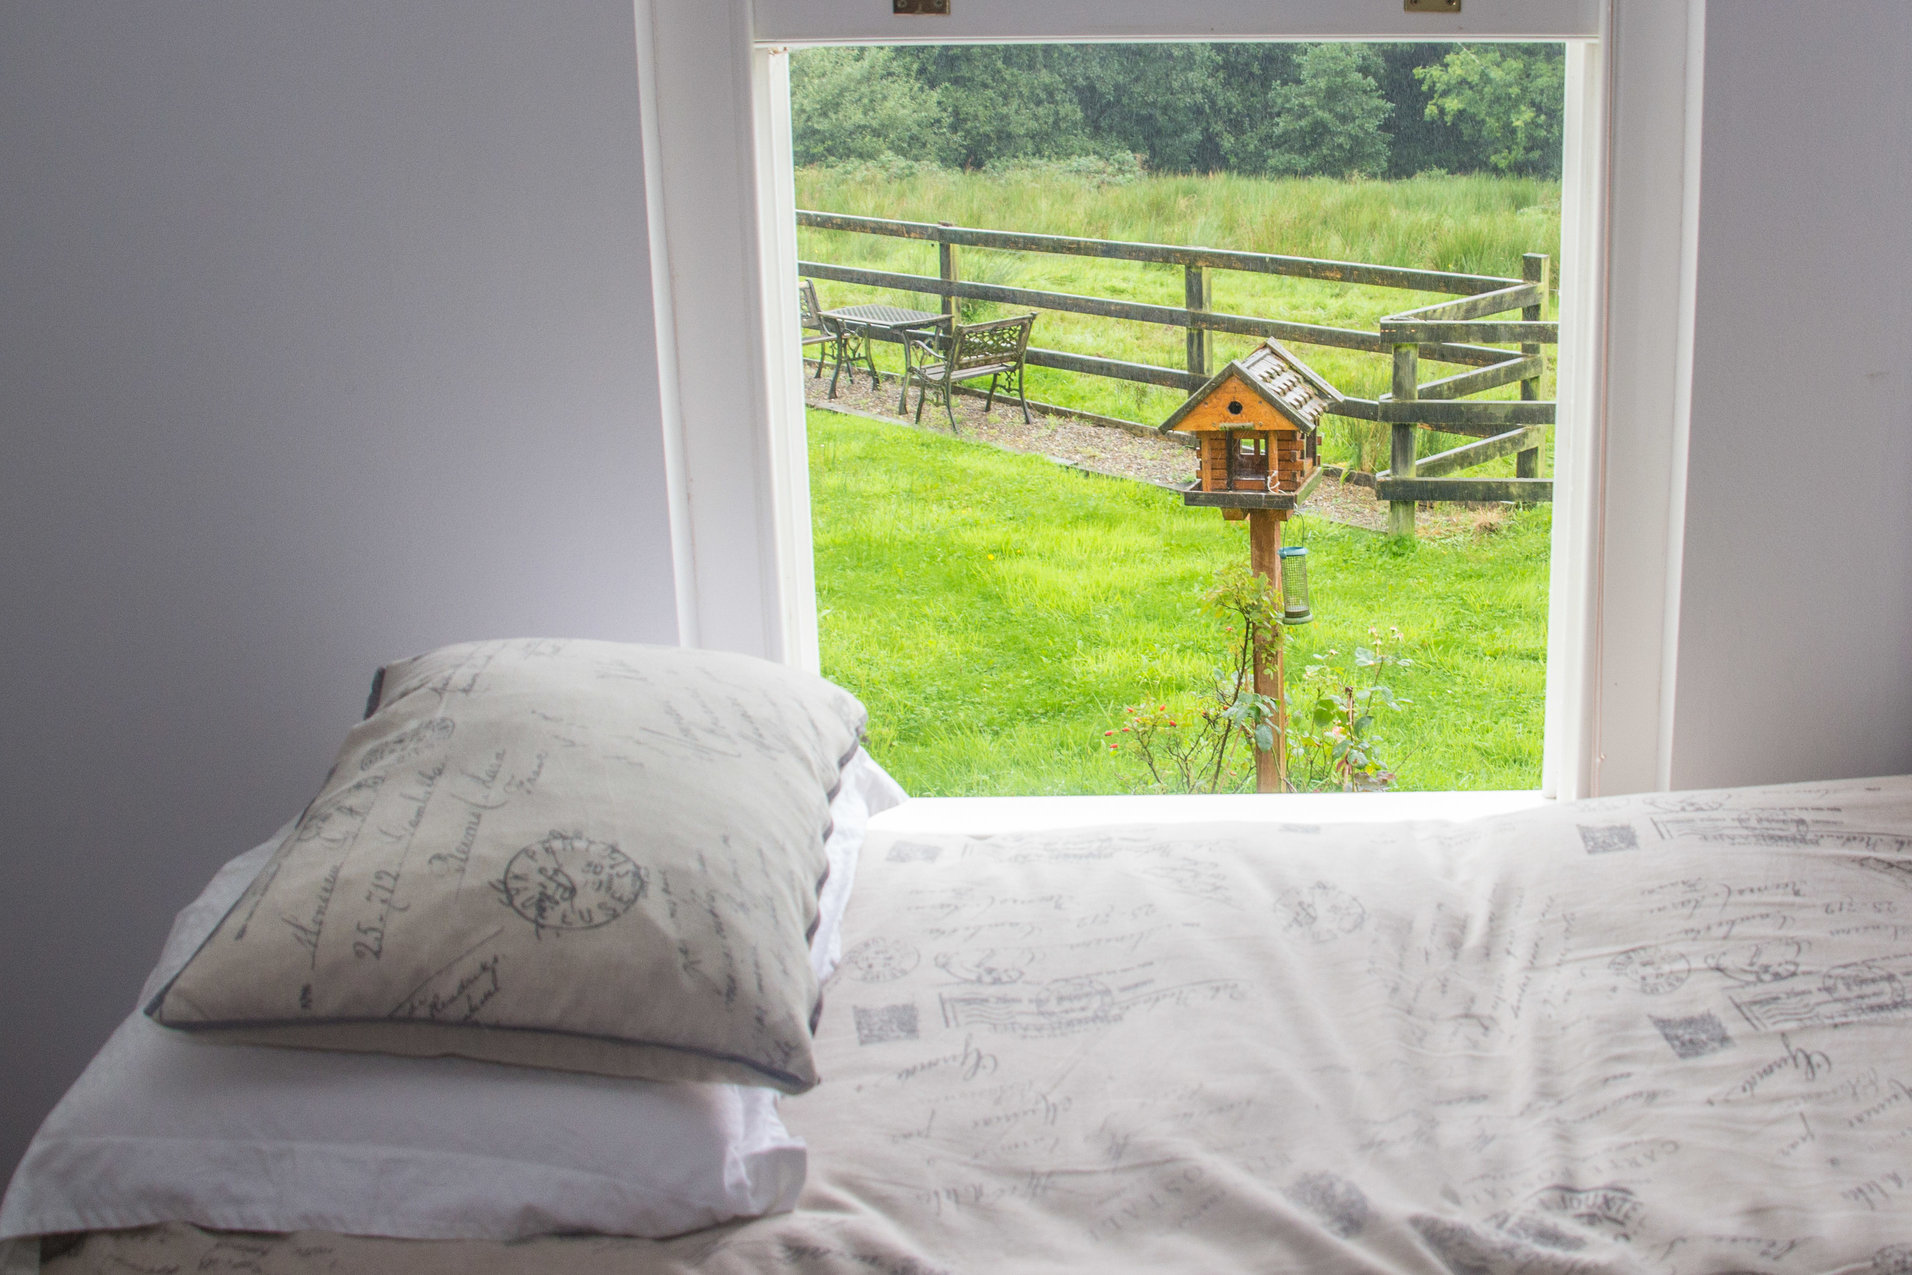 The Holistic Centre of Excellence is situated in the tranquil setting of Murroe.